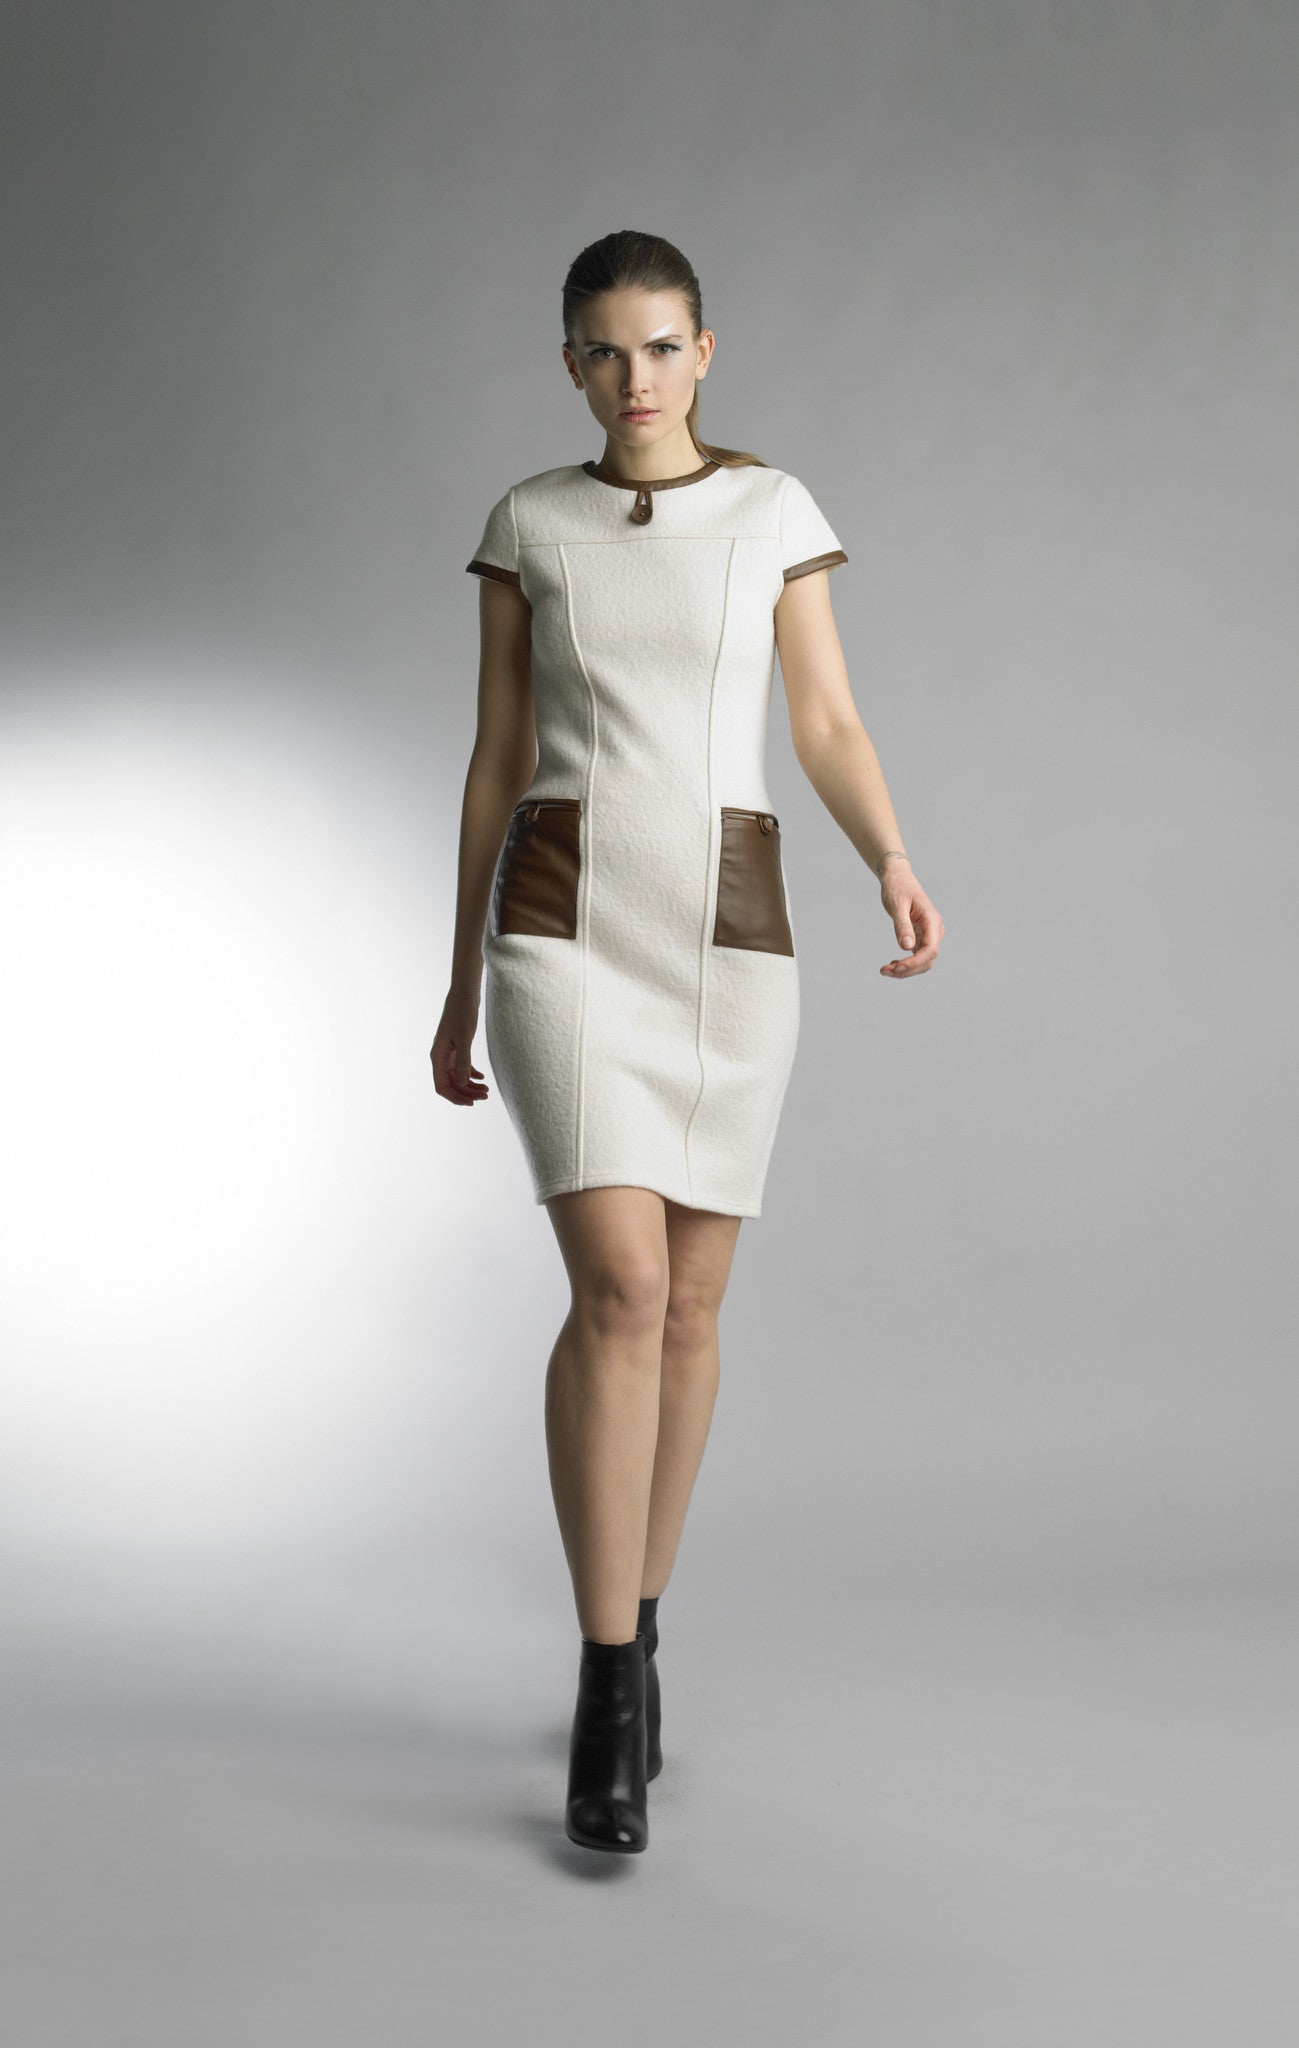 Historic New York La Laine Nuage Wool Cloud Dress - Historic New York